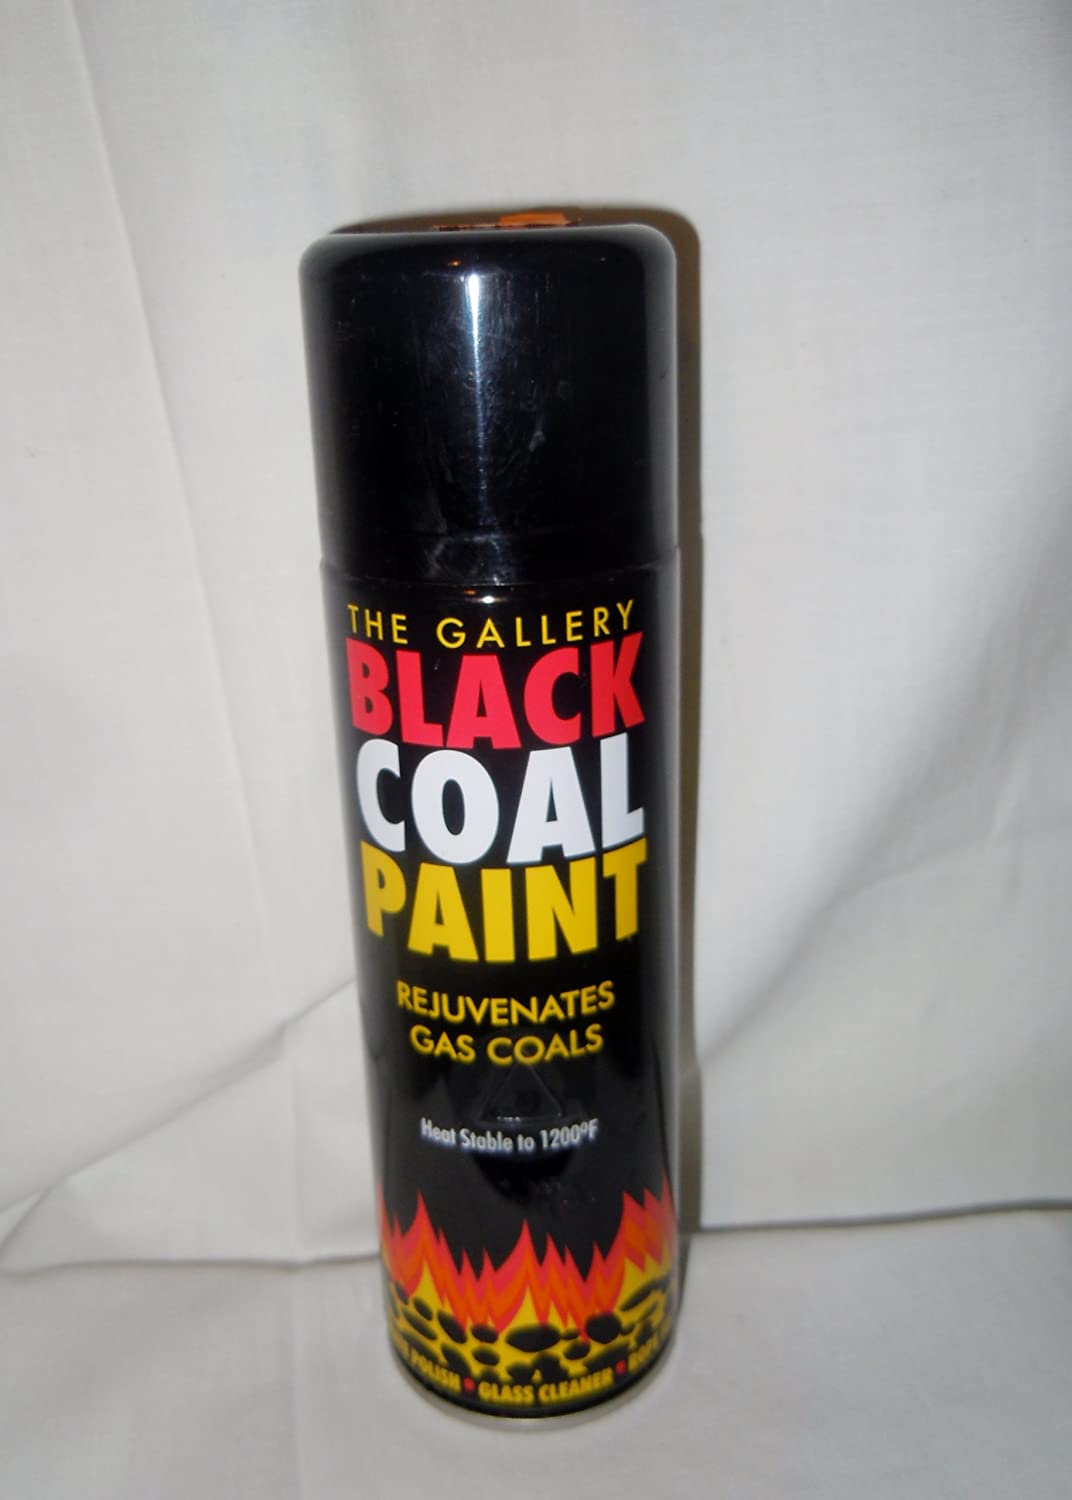 black coal paint spray for gas coals stove grate fireplace wood or